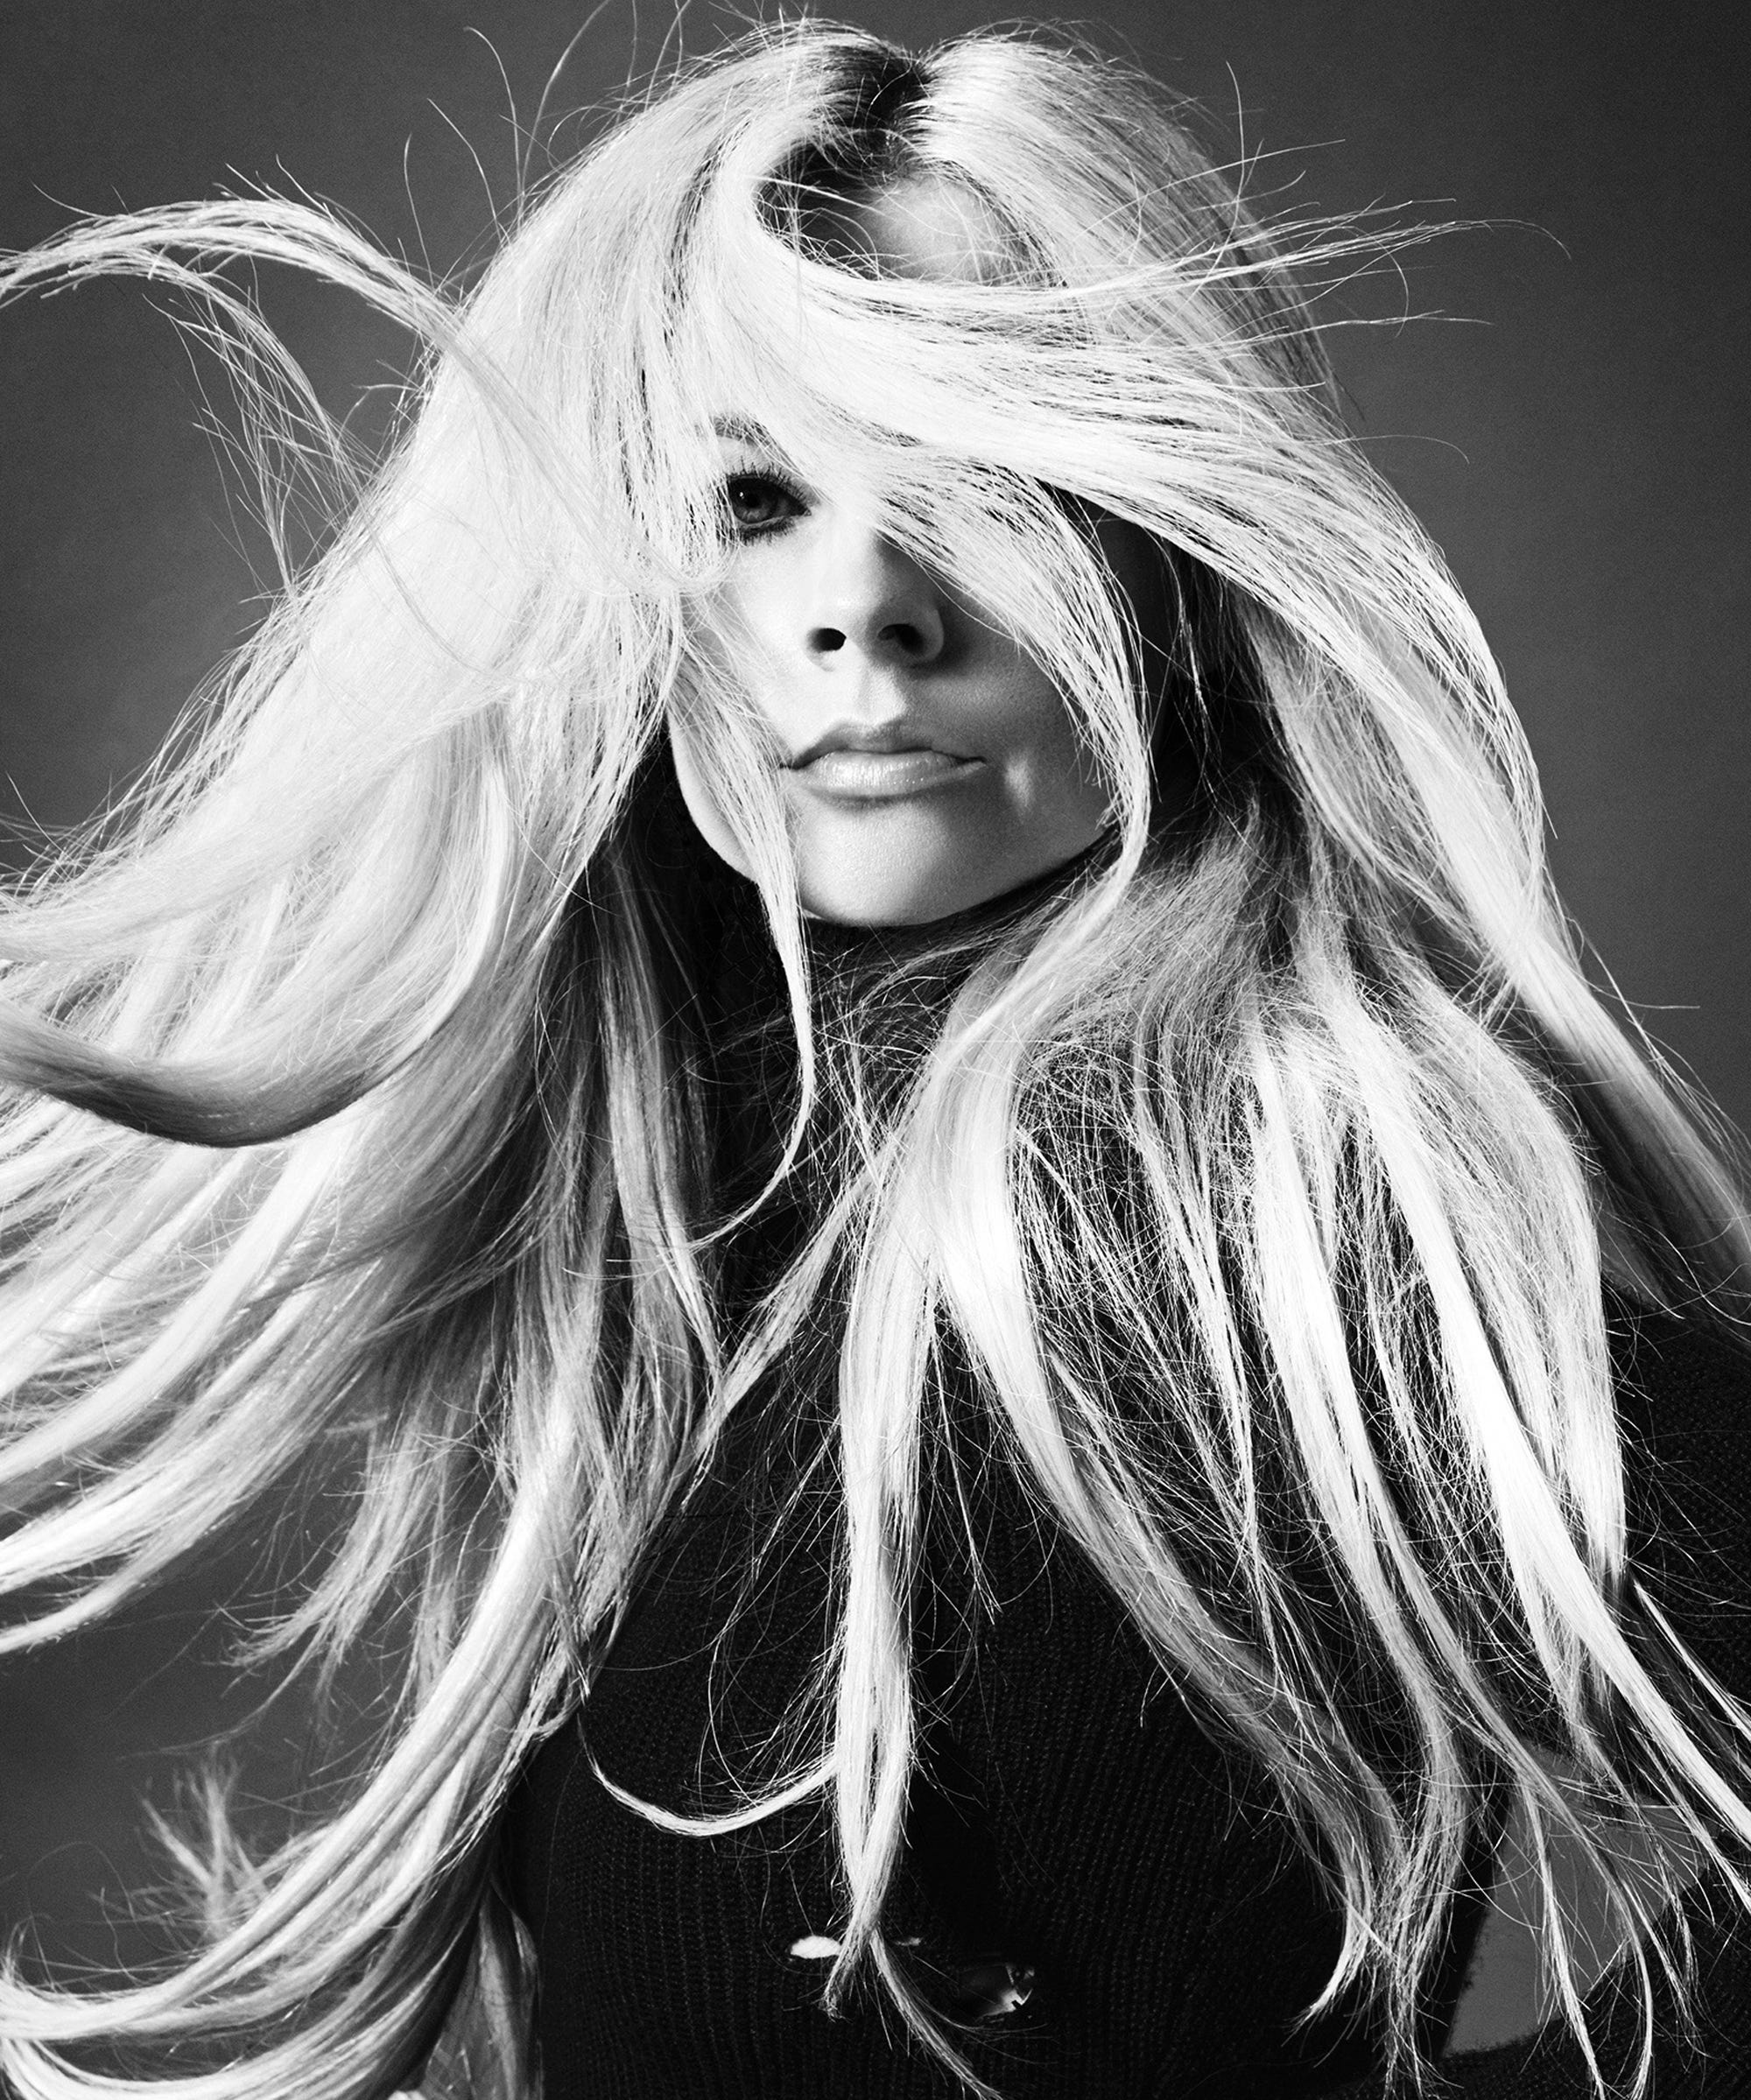 Avril Lavigne Struggles To Keep Her Head Above Water On Latest Album